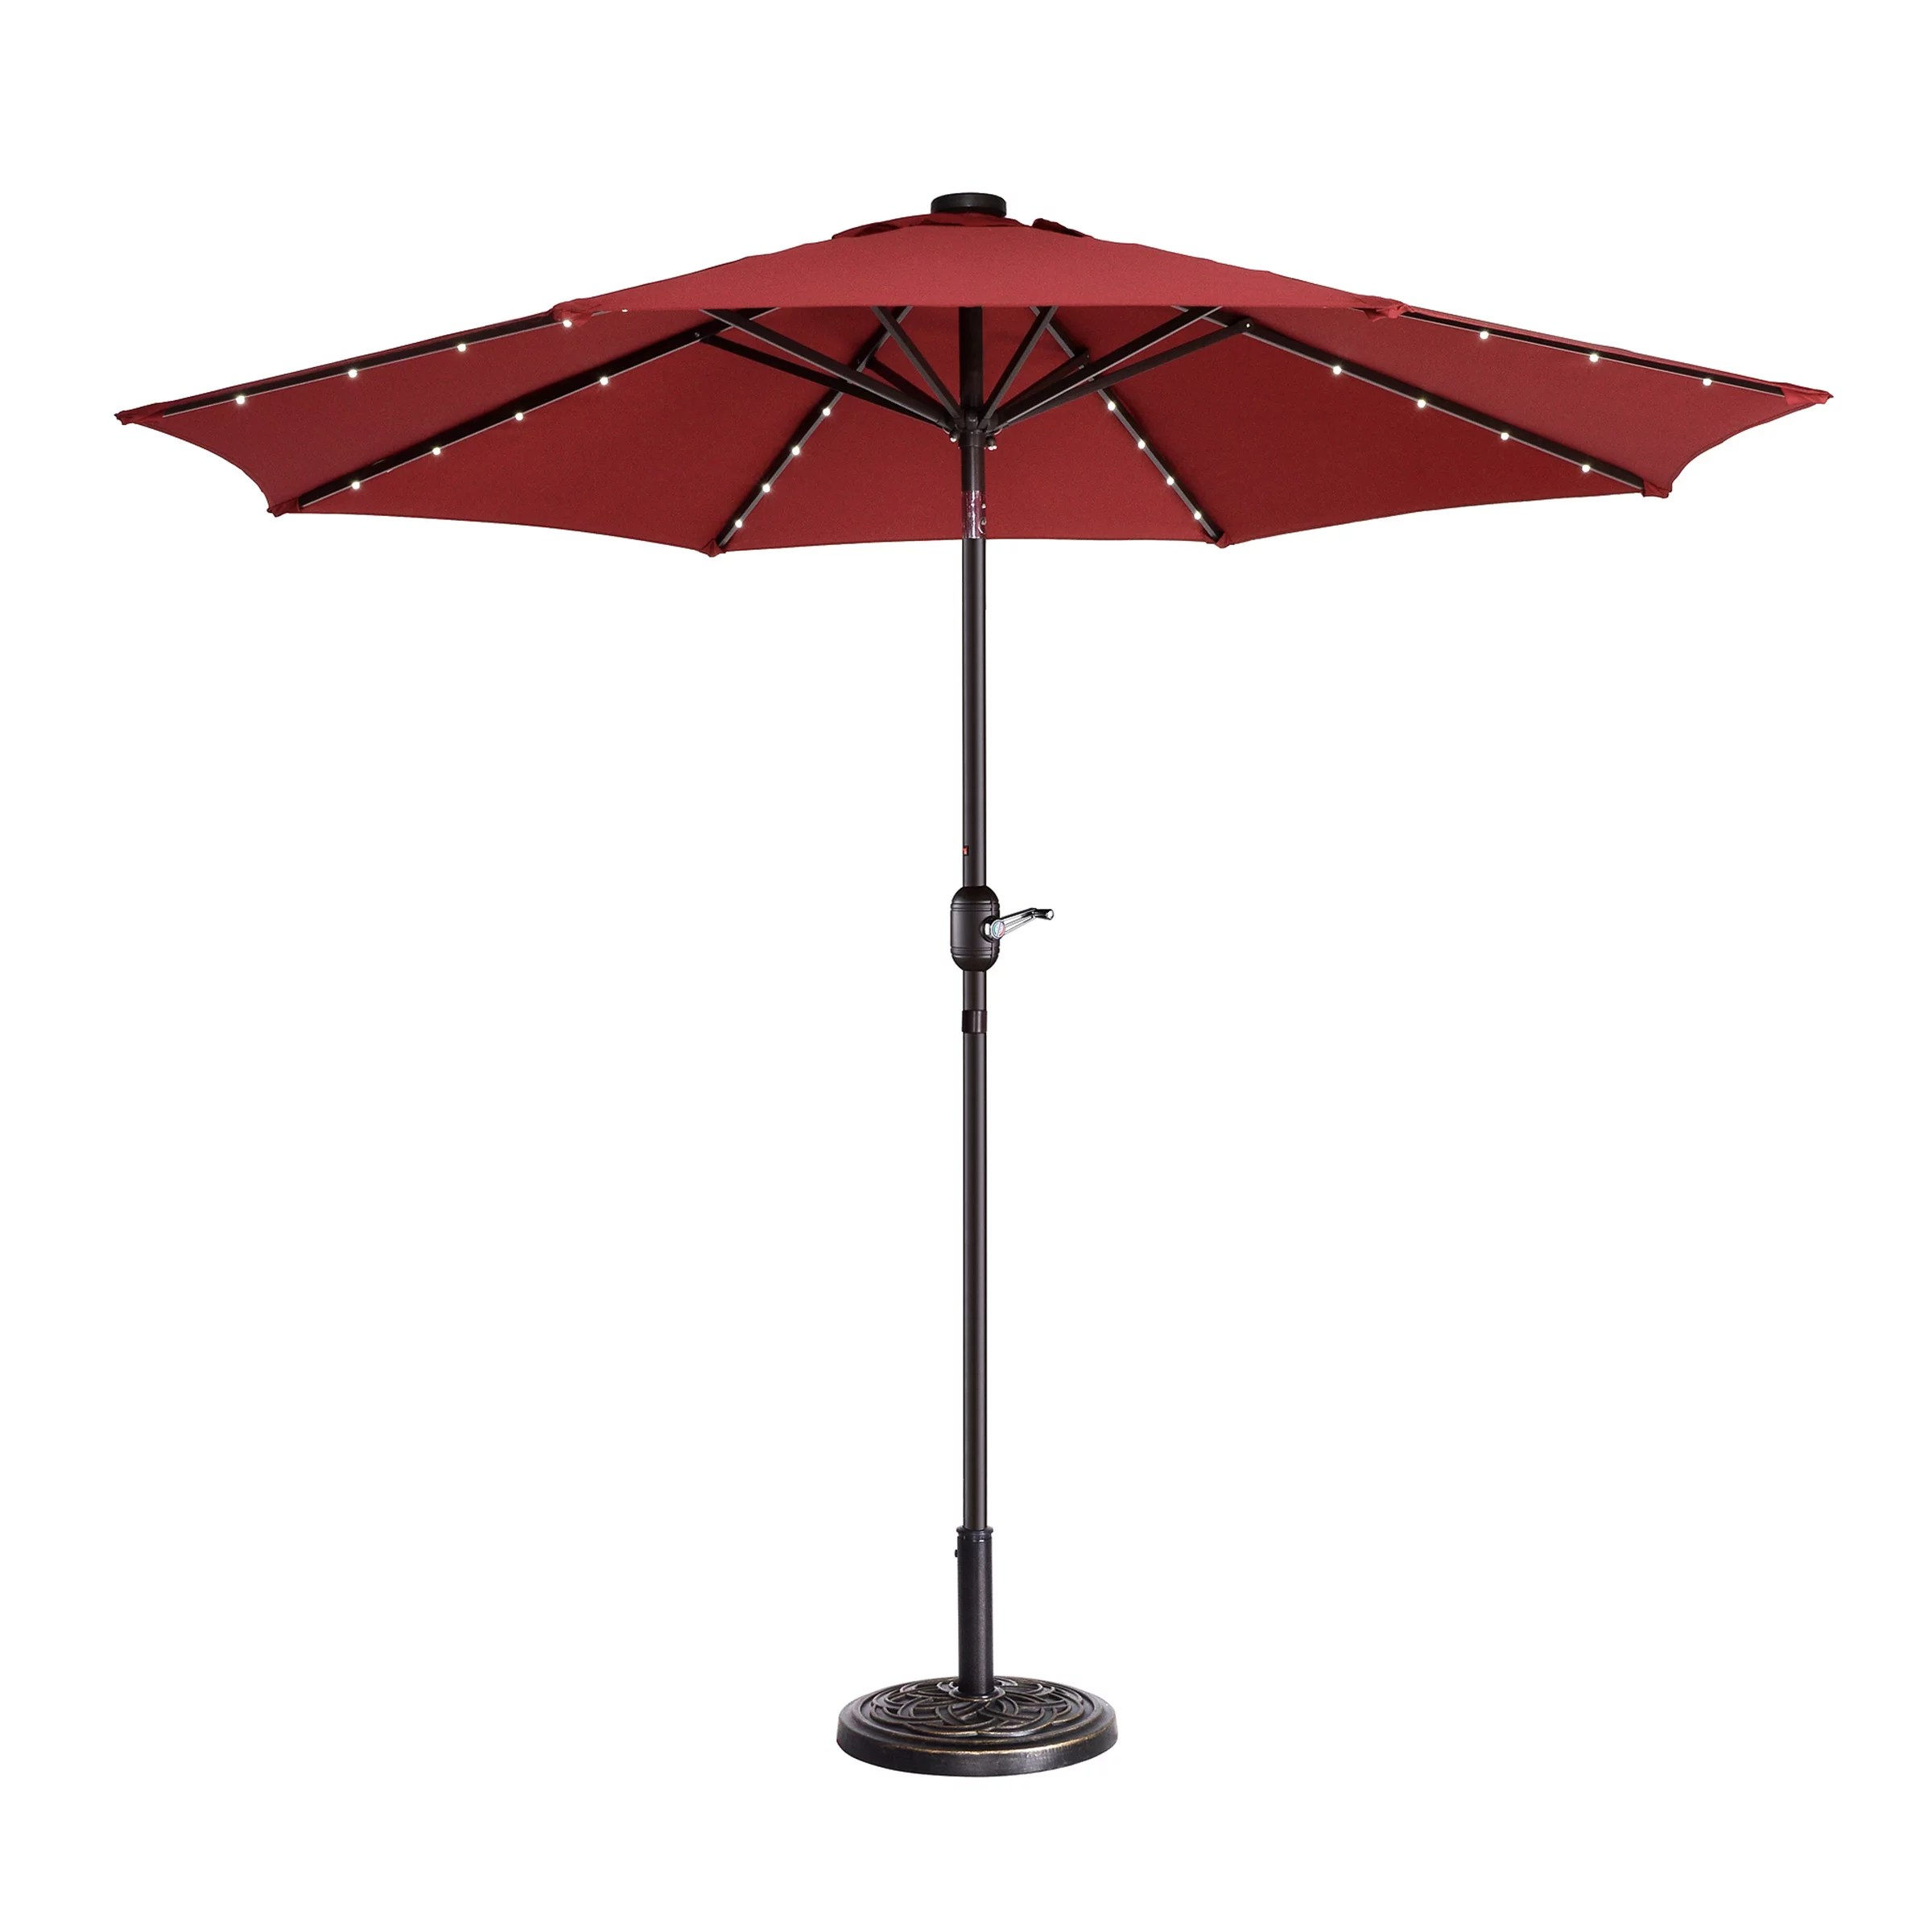 villacera 9 led lighted outdoor patio umbrella with 8 steel ribs and push button tilt solar powered market umbrella red